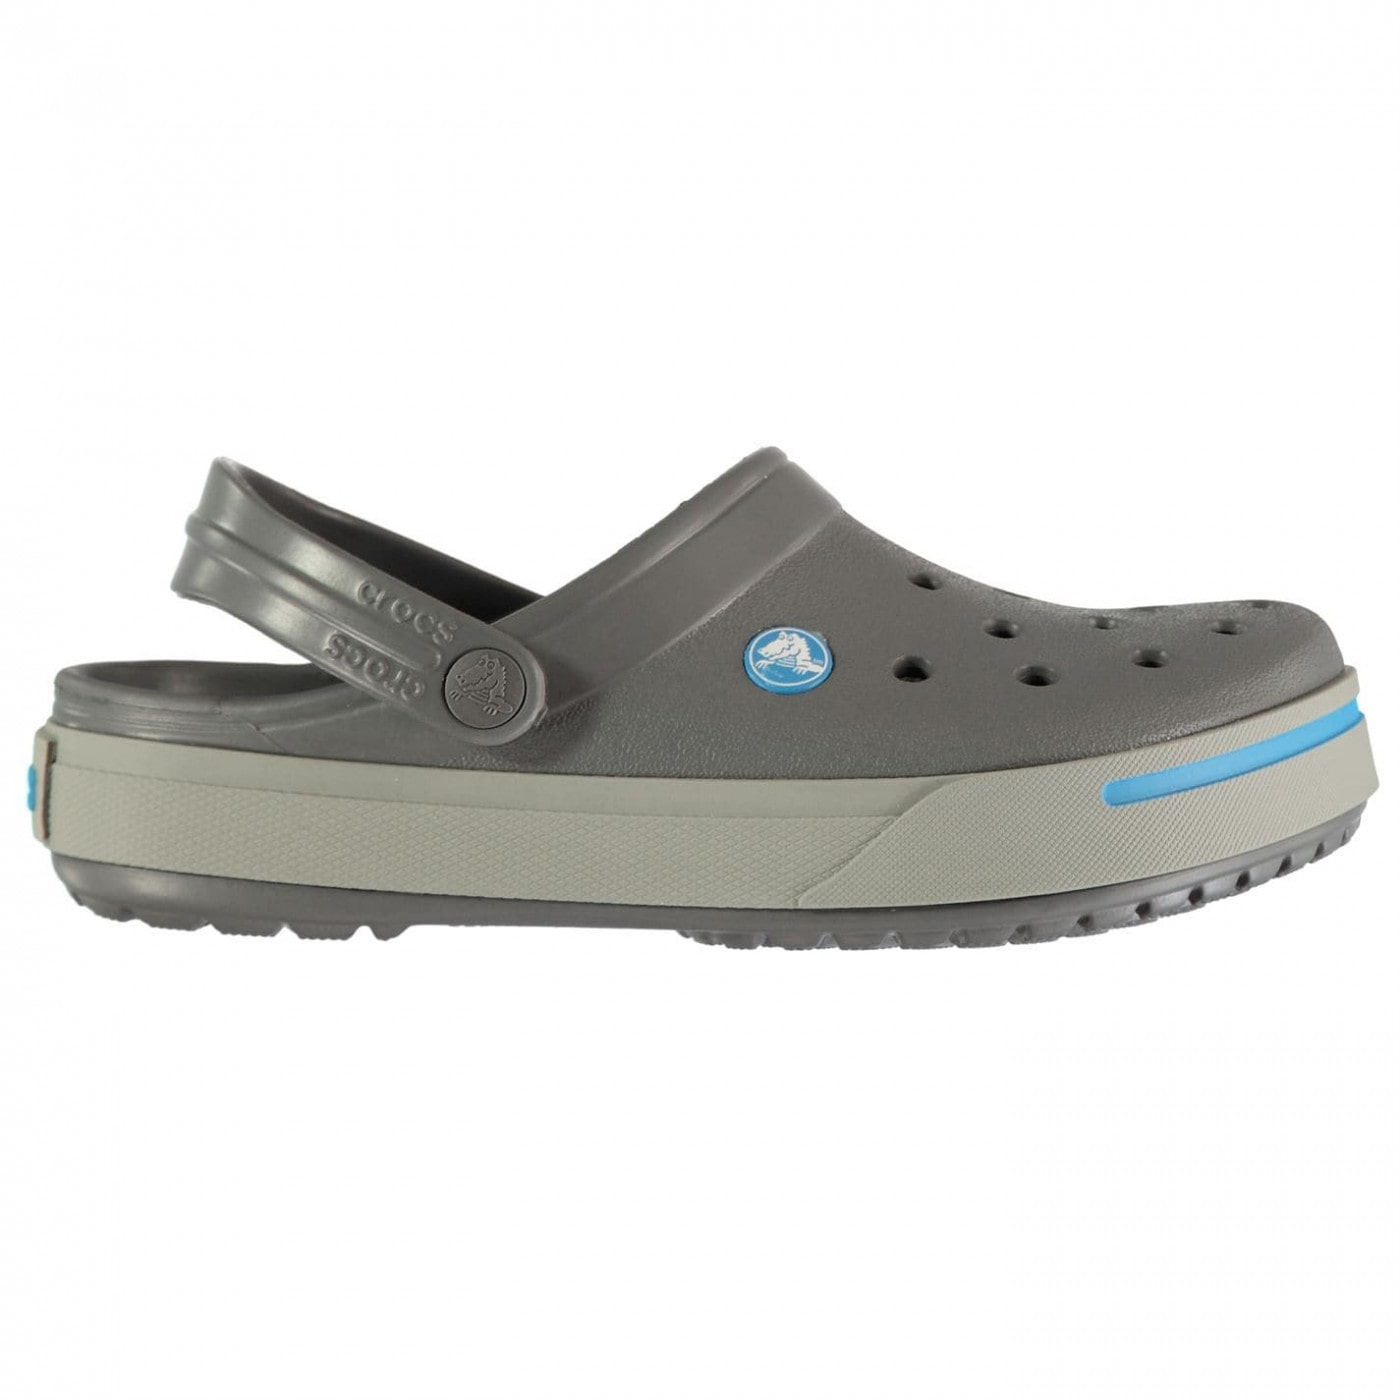 Crocs Crocband II Adult Clogs